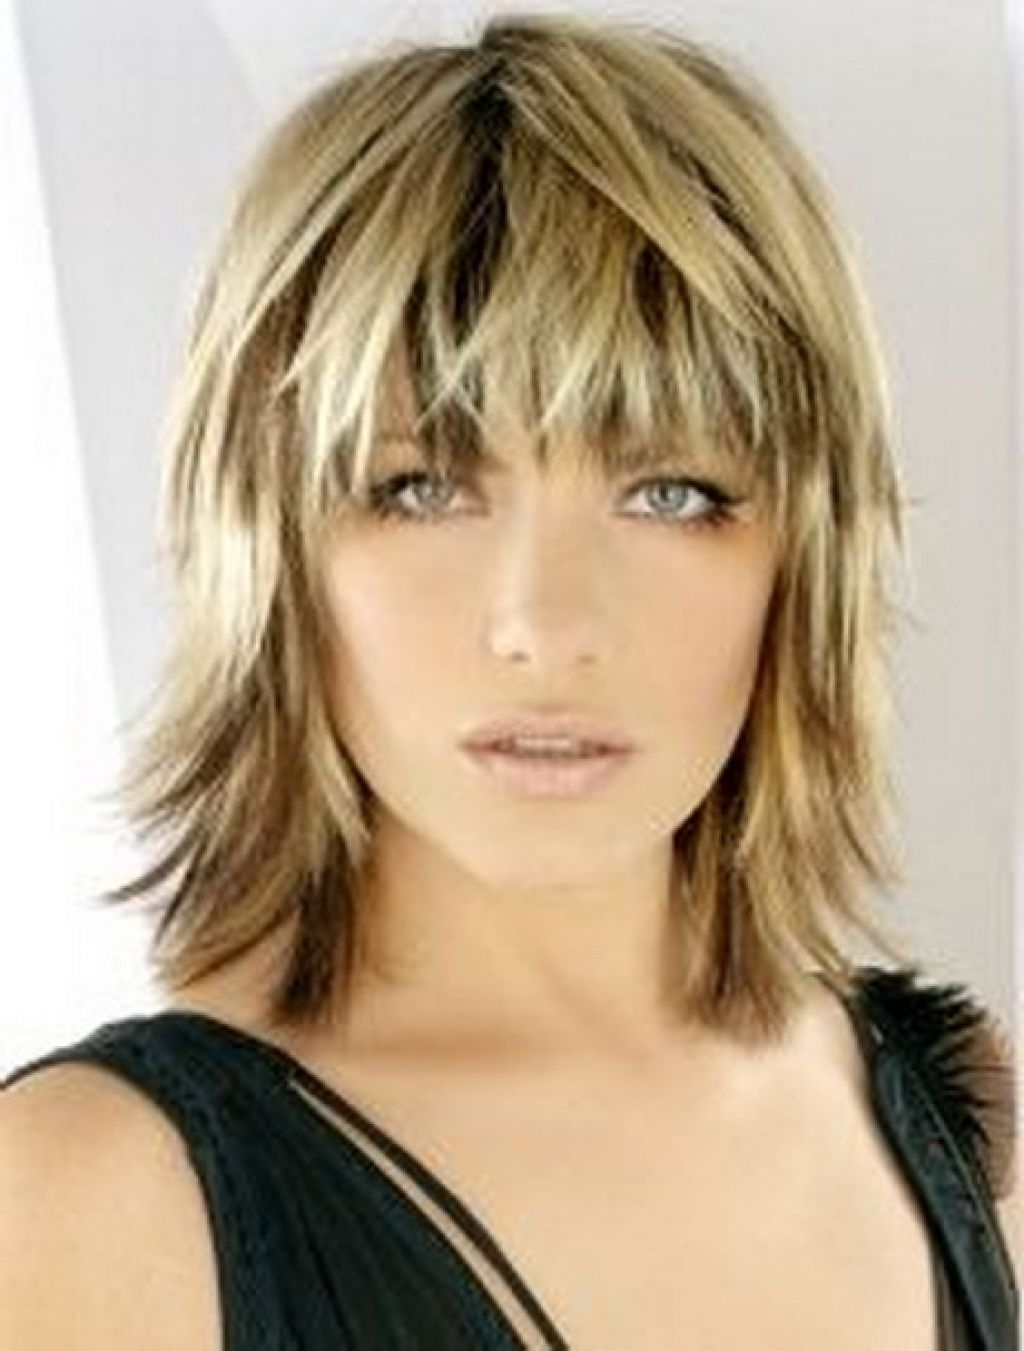 Well Liked Layered Shaggy Bob Hairstyles For Medium Length Layered Haircut With Bangs – Hairstyle For Women & Man (View 15 of 15)